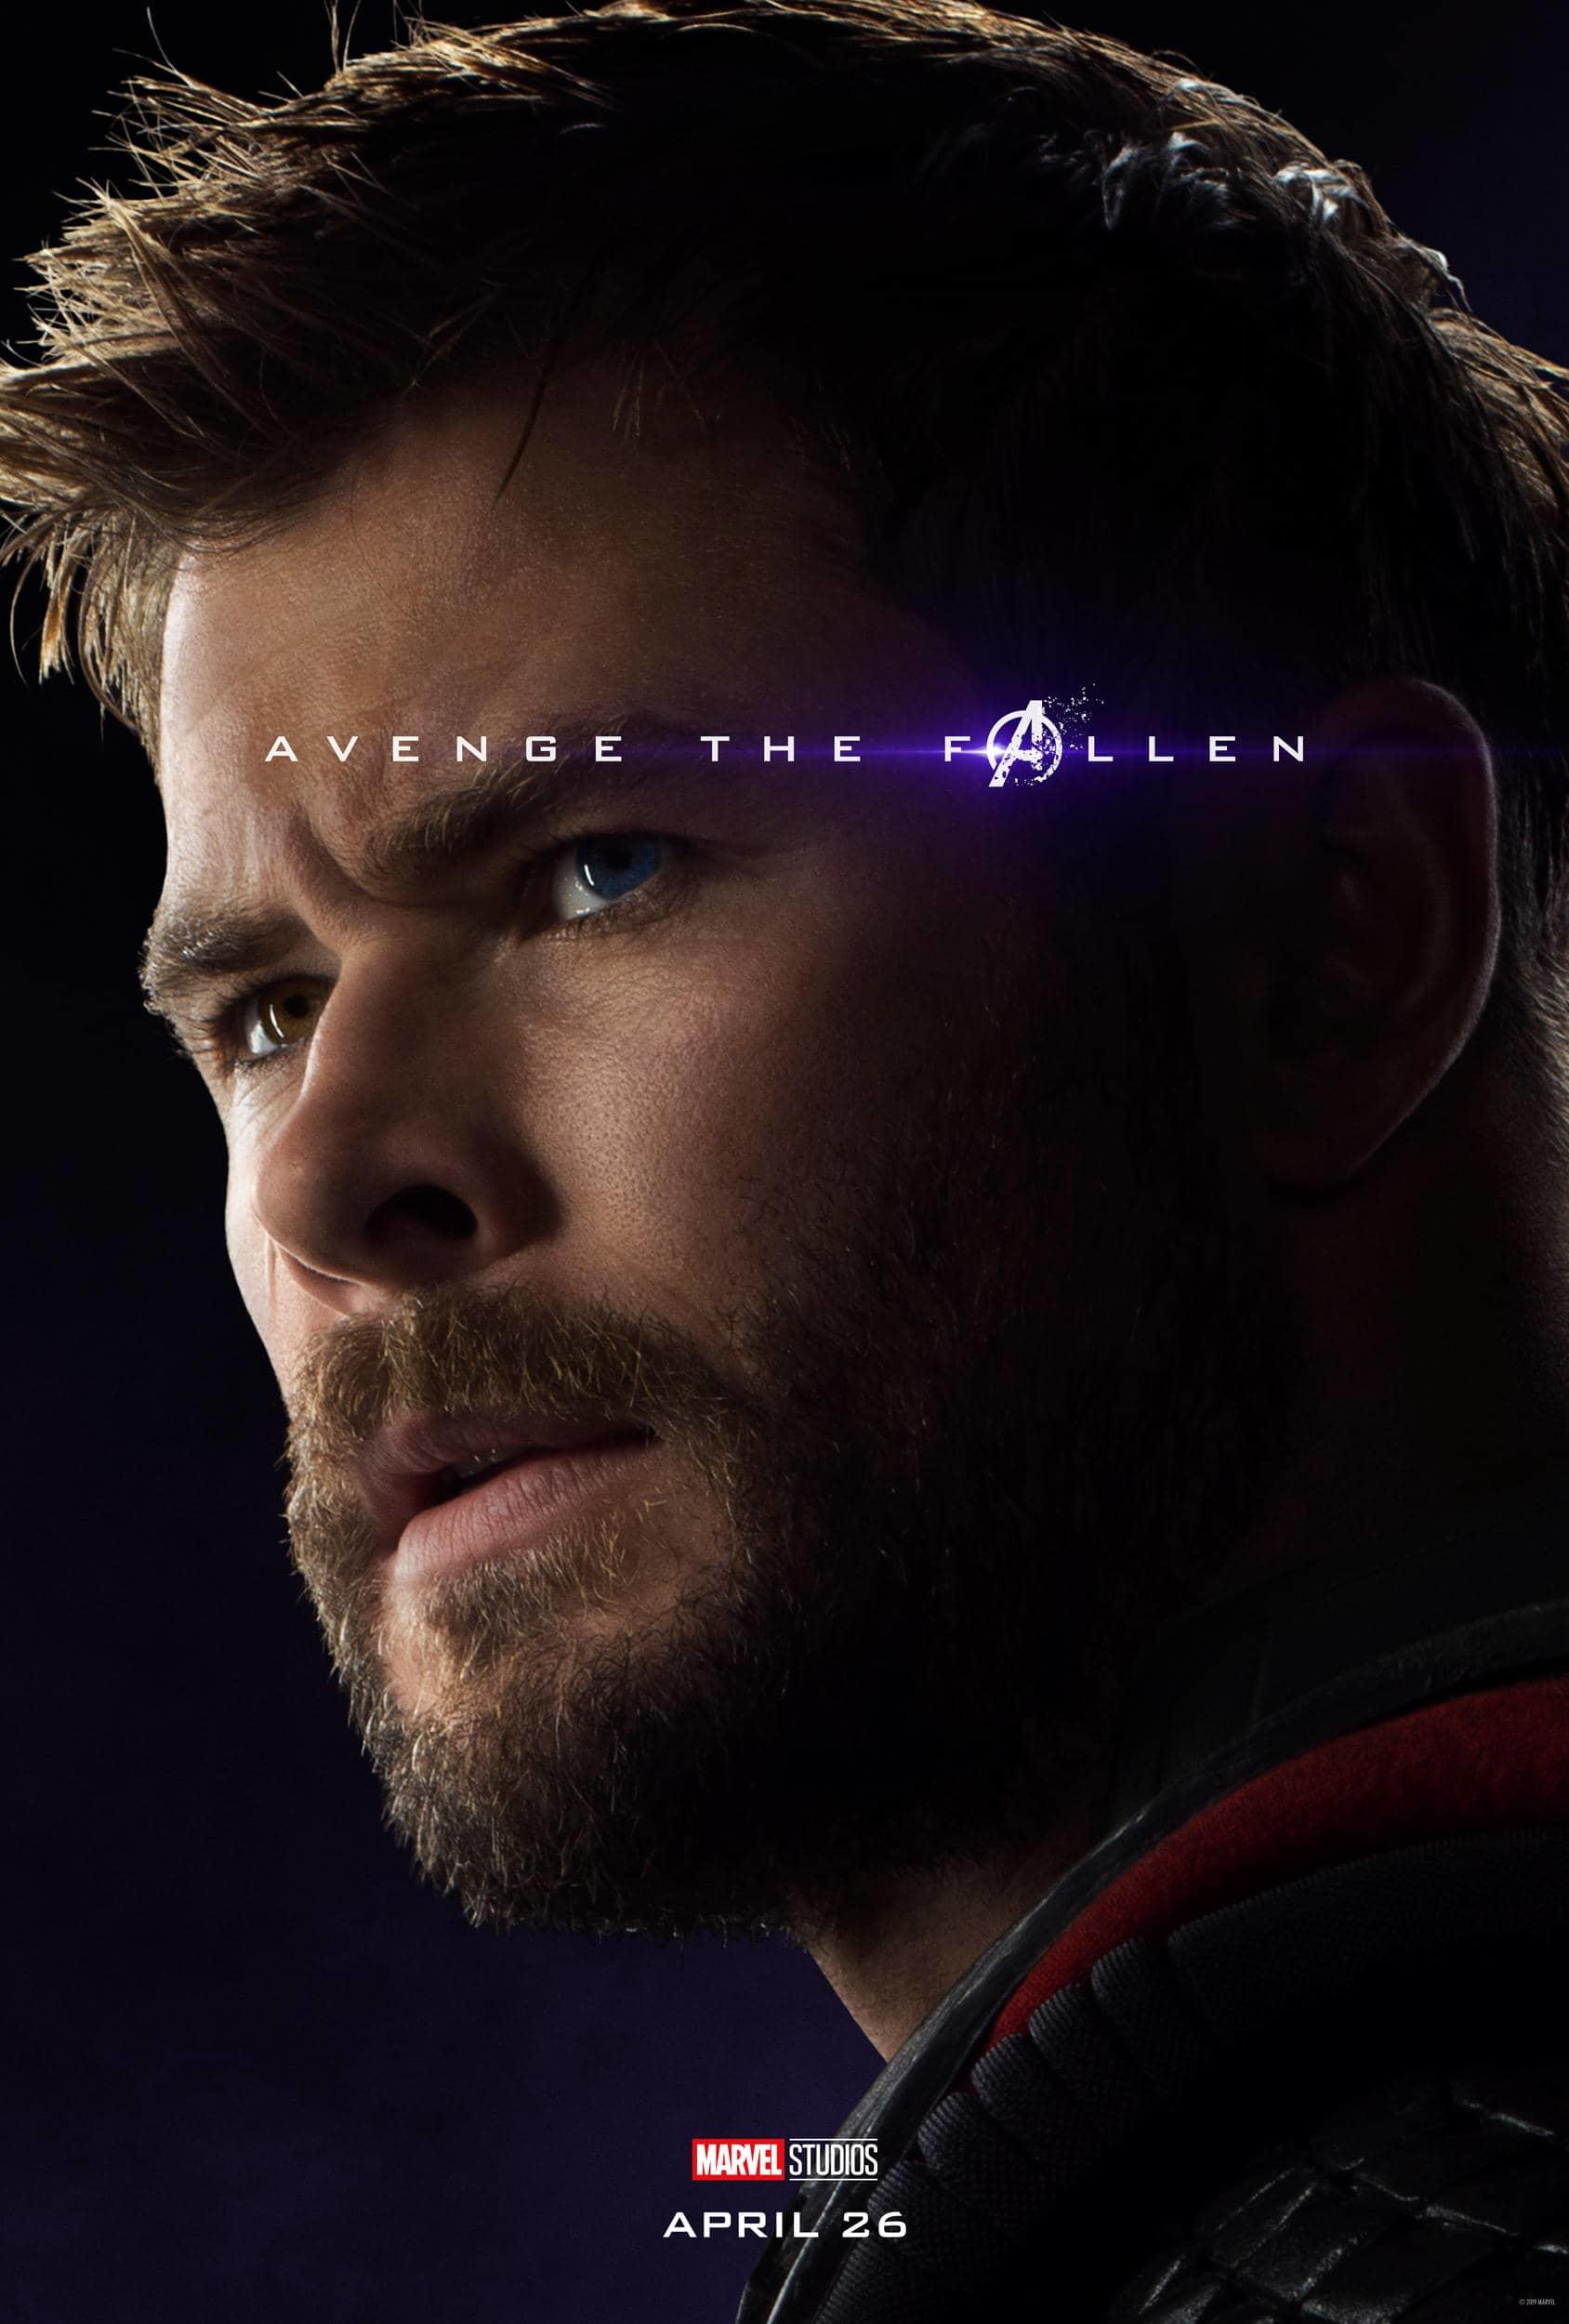 Marvel Studios' Avengers: Endgame Movie Cast Thor Chris Hemsworth